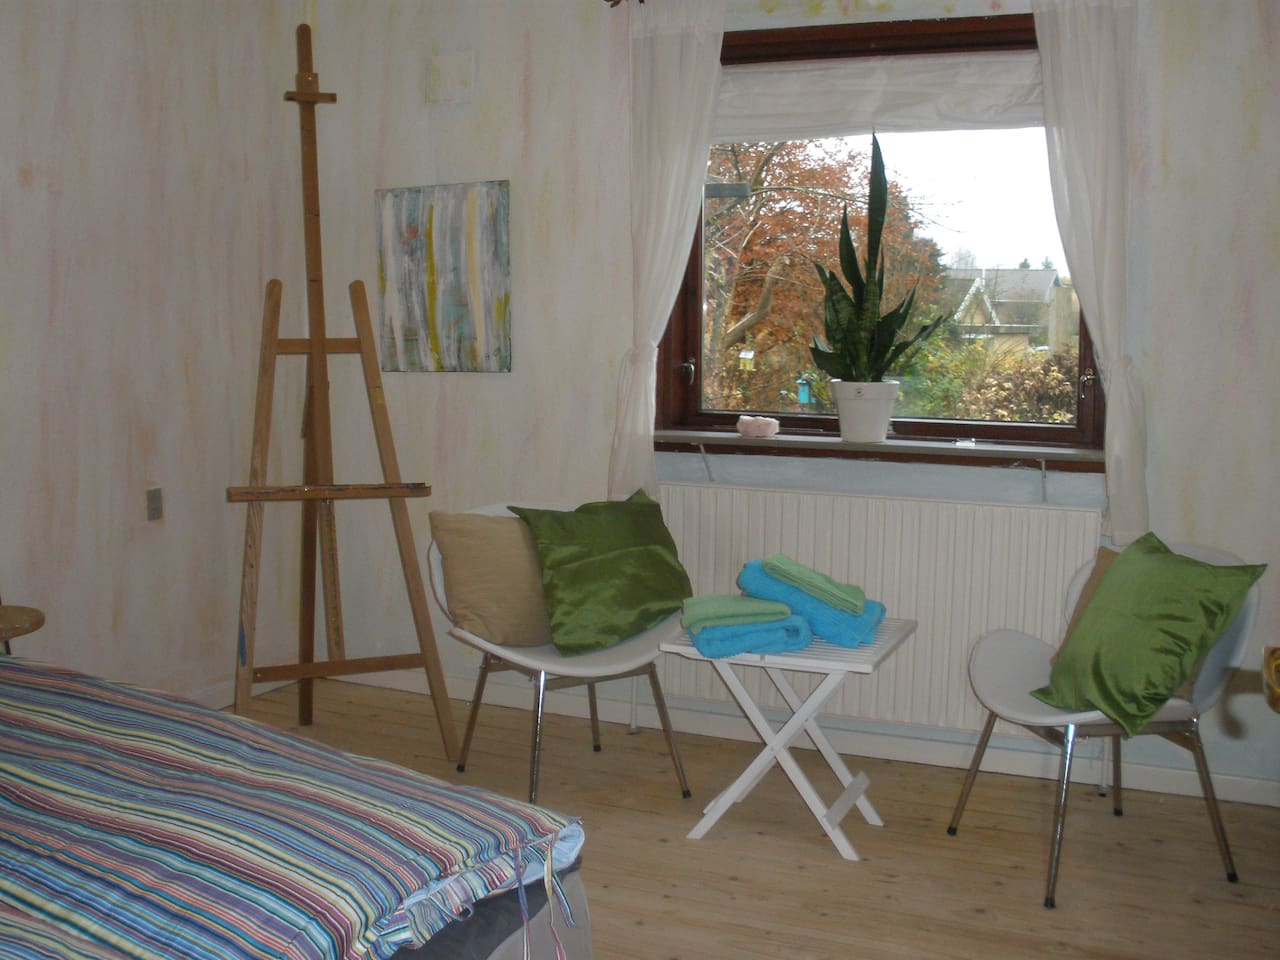 The painting studio room - a double room